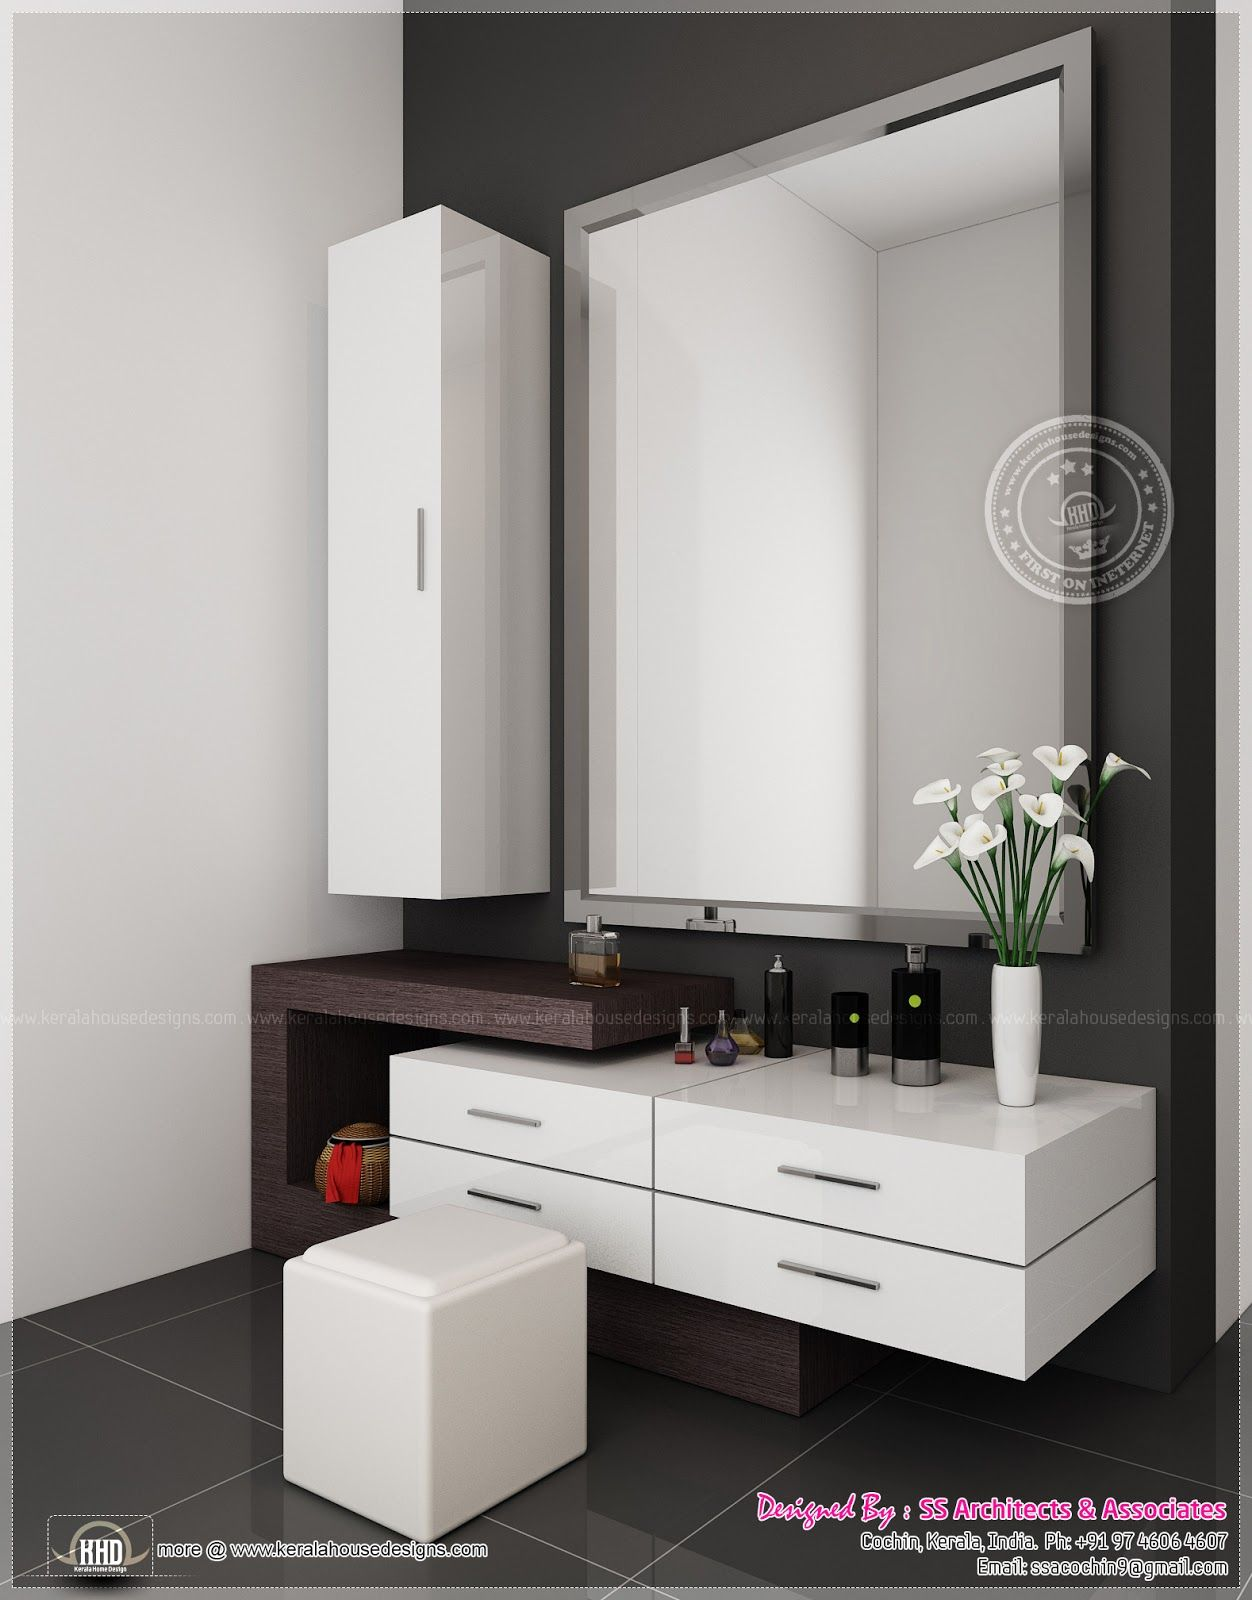 Indian dressing table designs with mirror - Cool Dressing Table Design Designs Small For Bedroom With Almirah Simple Full Length Mirror In Wood Malaysia Tables Photos Indian Latest Storage Of Ideas